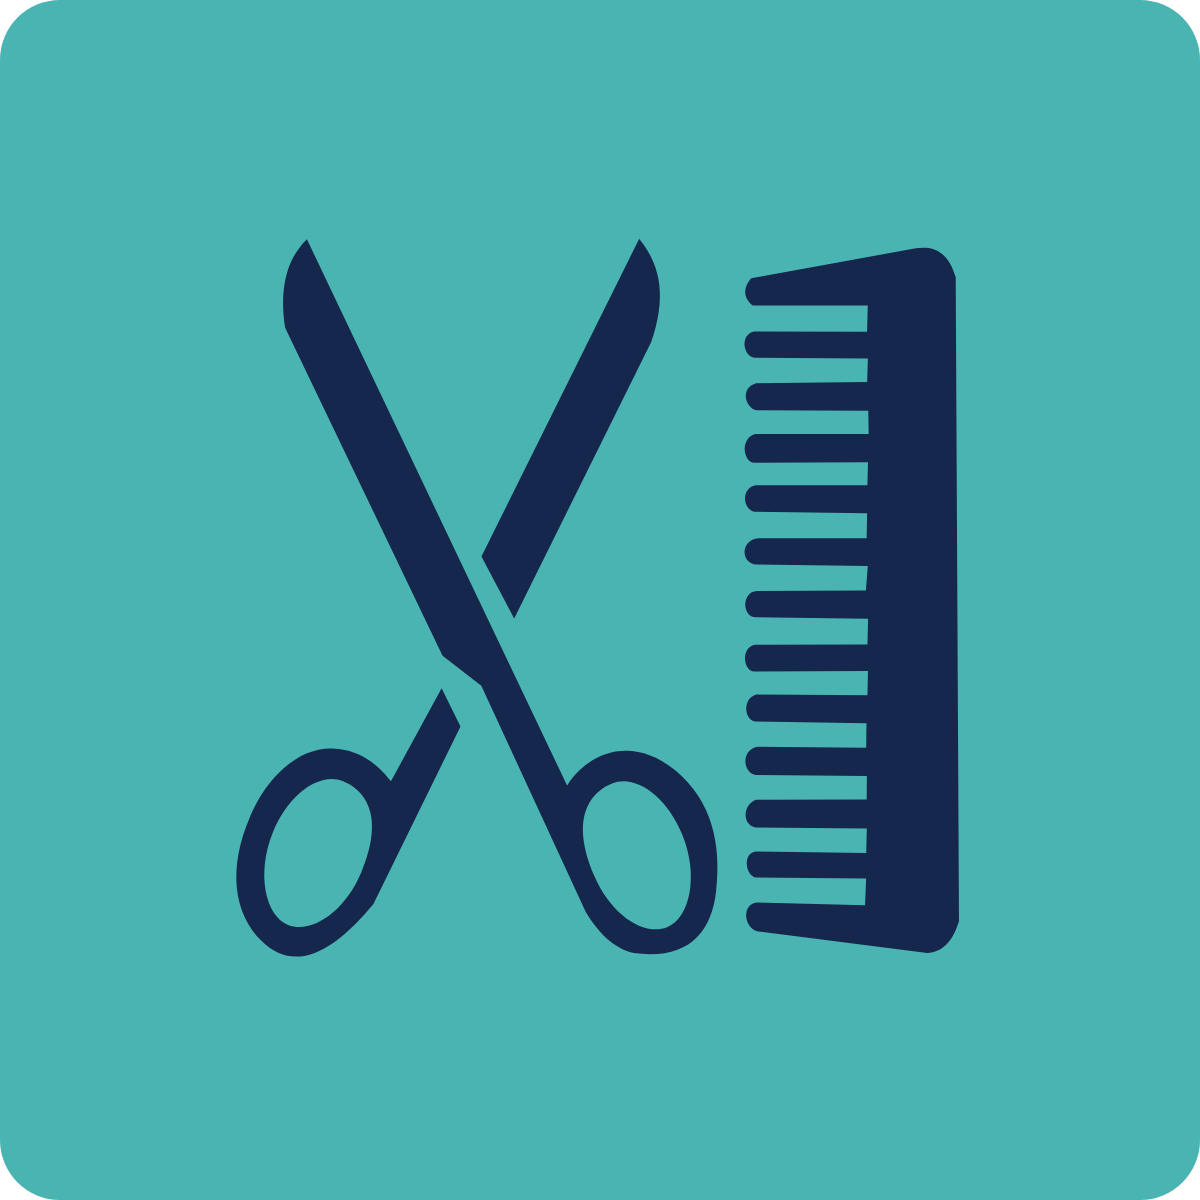 Cutting hair symbol